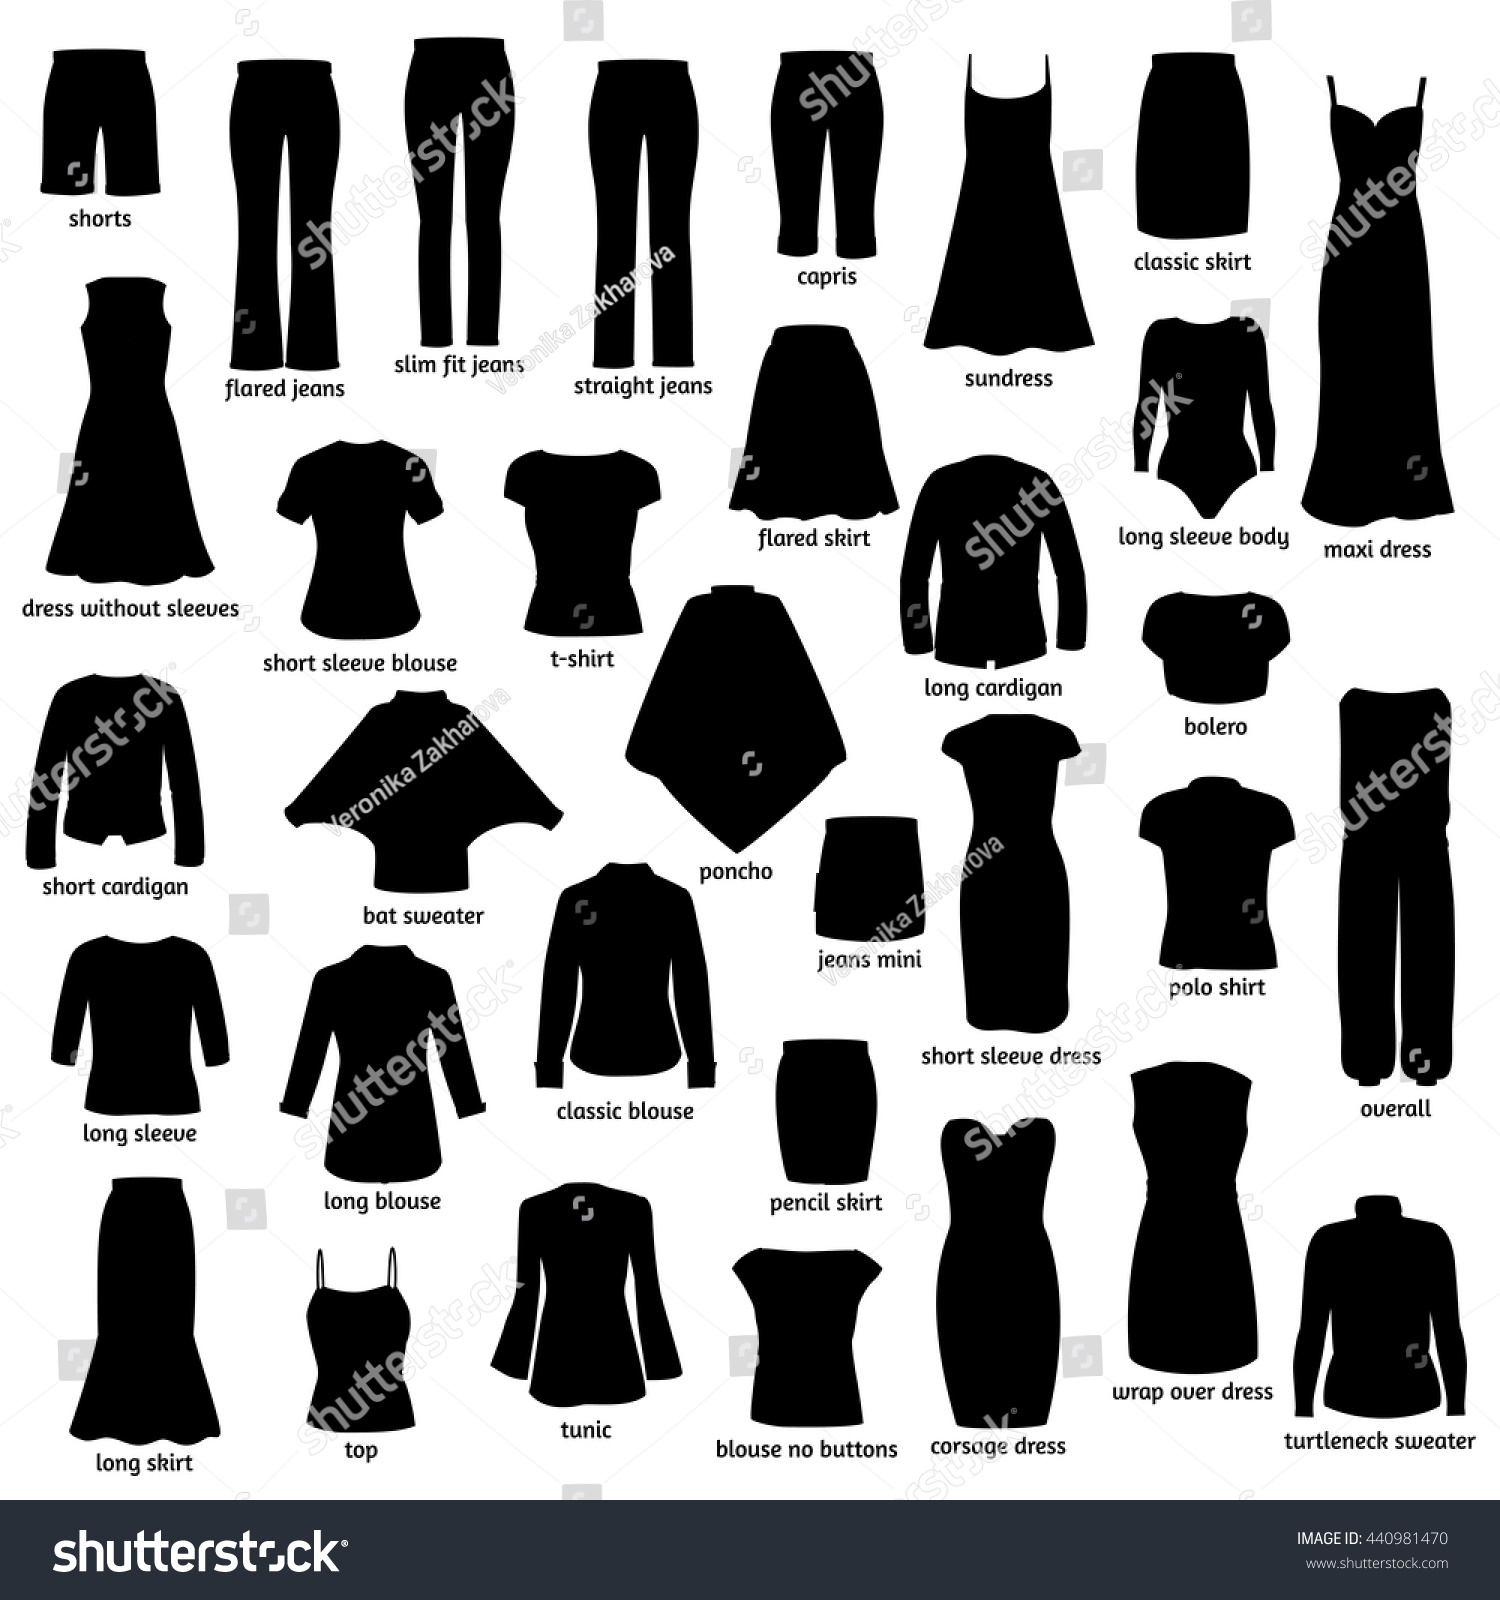 clothes names silhouettes icons clothing stock